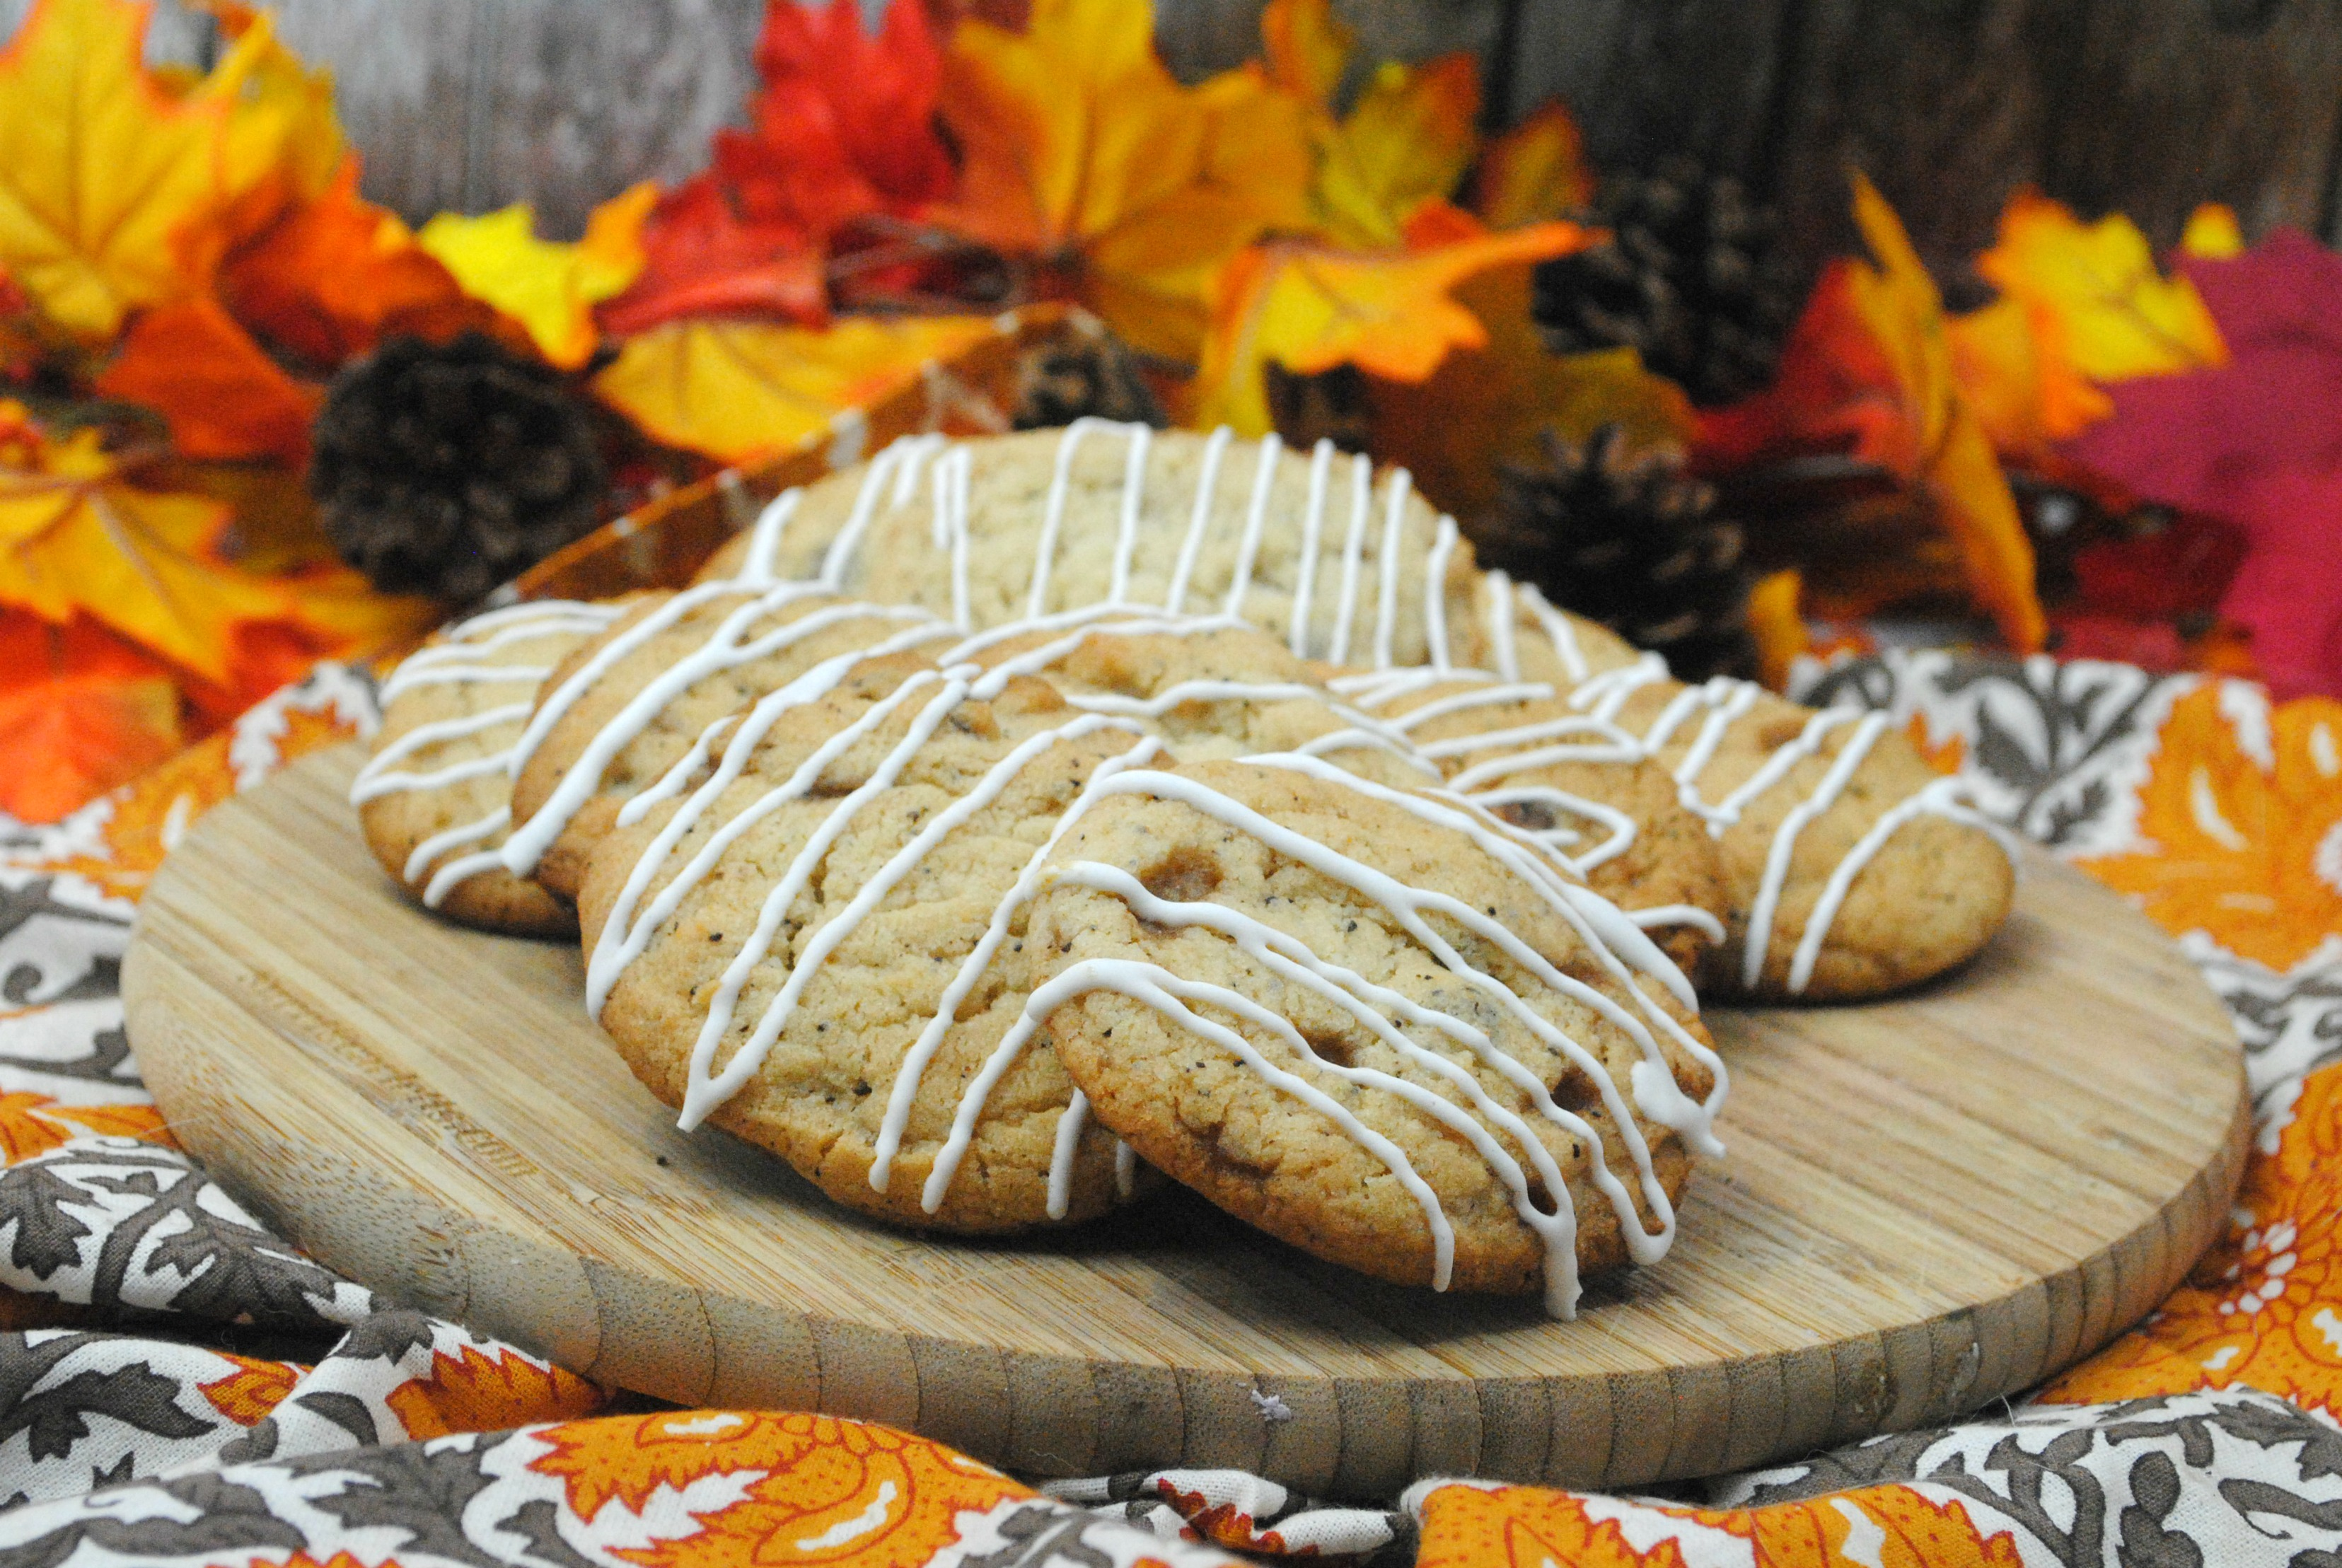 These pumpkin spice cookies have a nice twist. It taste like a latte in a cookie. YUM! If you like pumpkin spice coffee, you are going to love these pumpkin spice latte cookies.